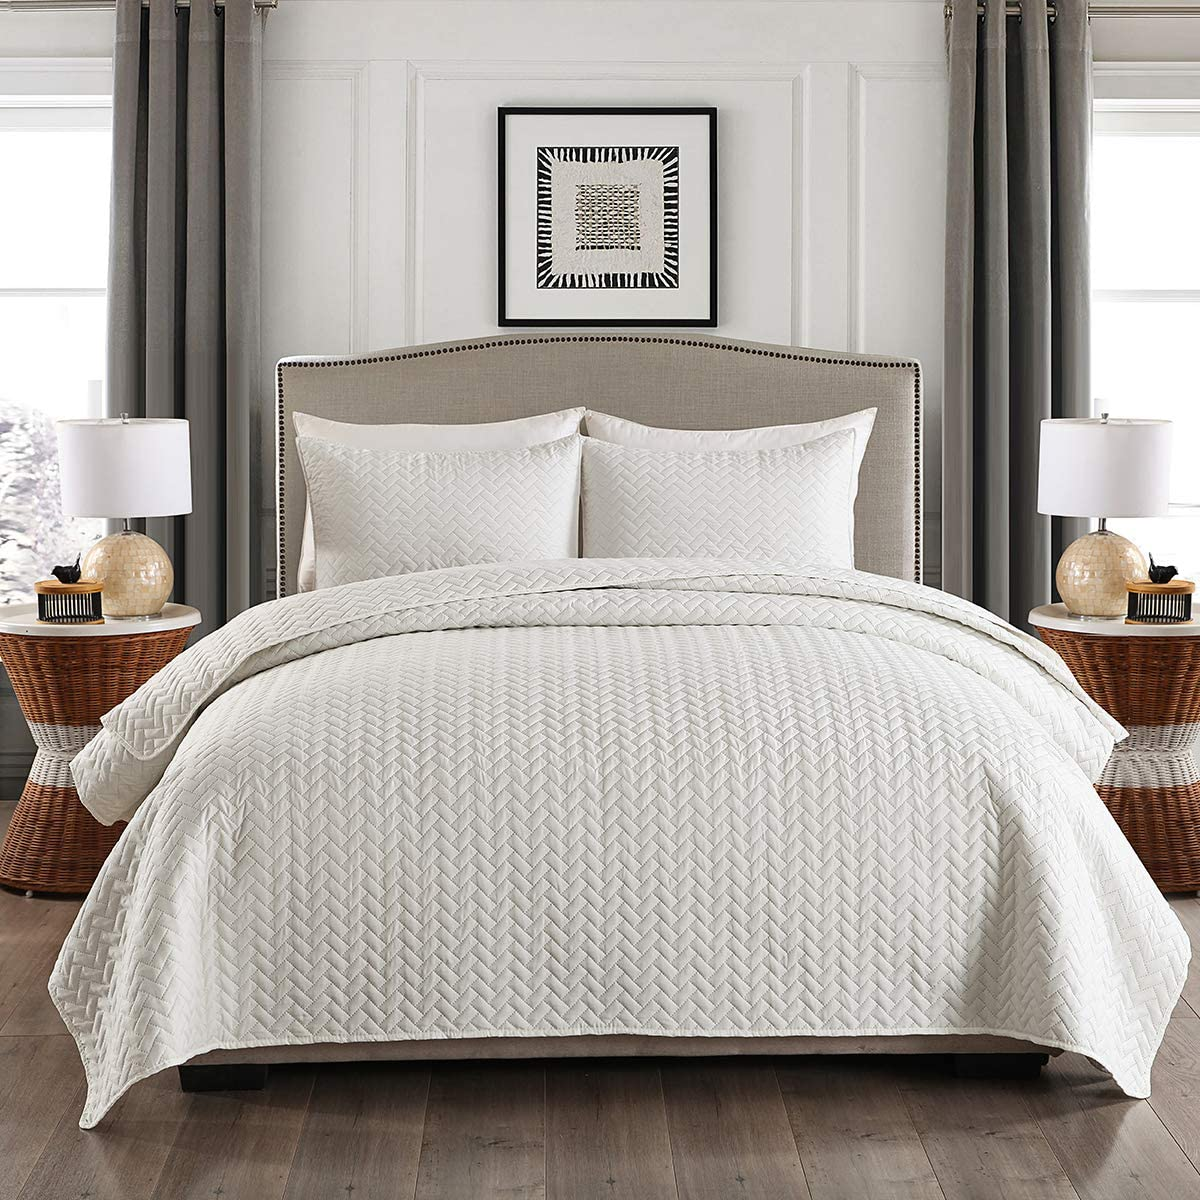 MERRYHOME King Quilt Set, 3-Piece Solid Lightweight Quilt Cover Bedding Set with Pillow Shams